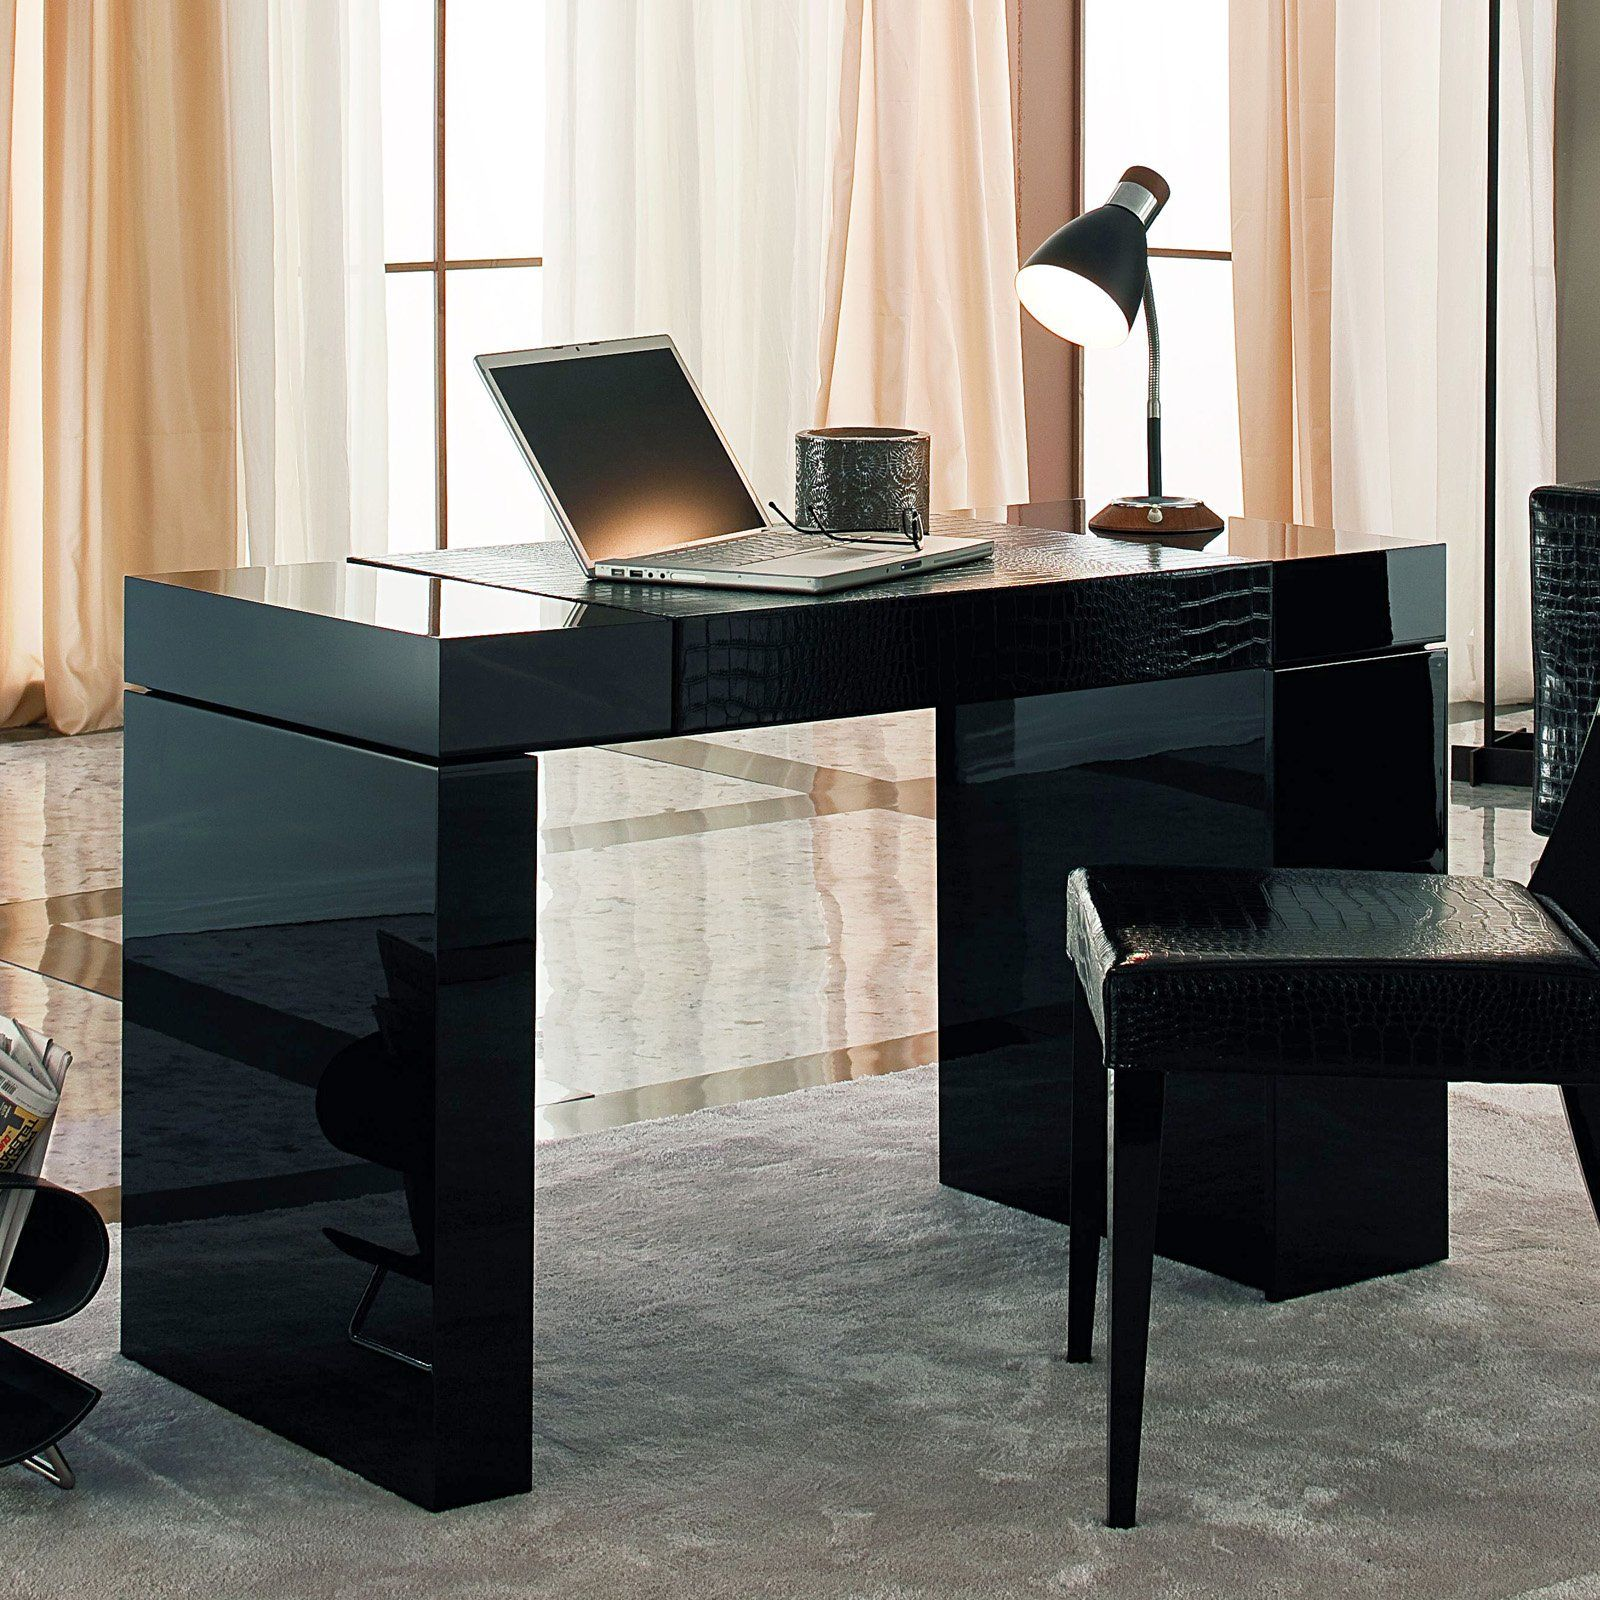 Black Home Office Furniture beading room nightfly writing/laptop desk - black $2589.99 | for